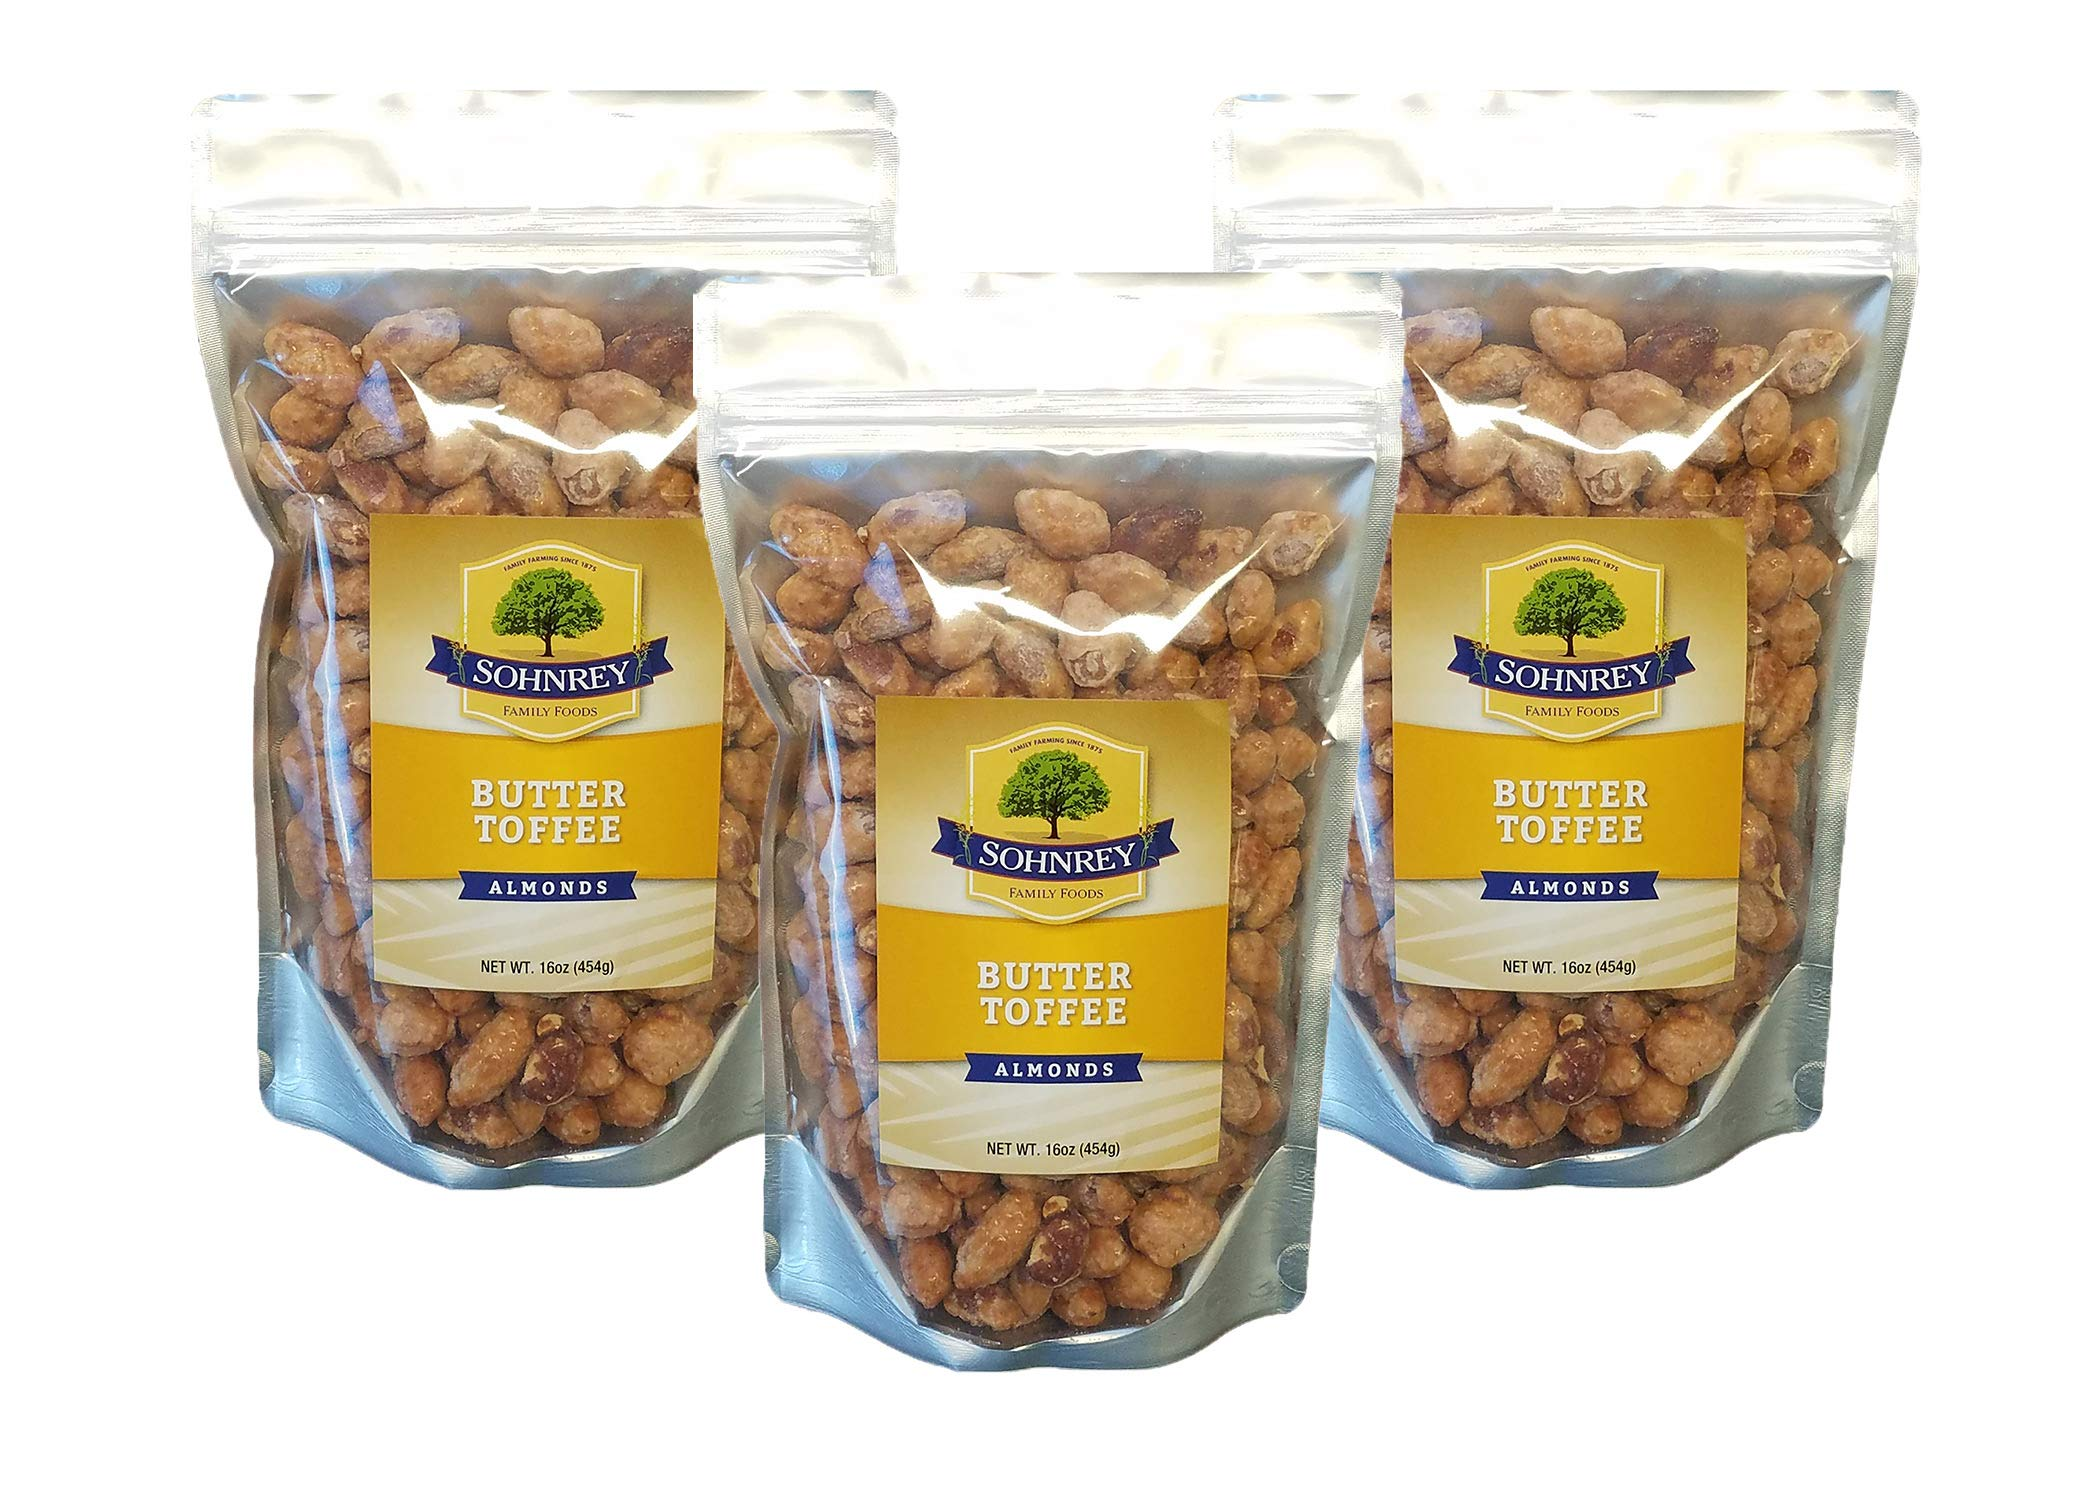 Butter Toffee Almonds Fresh Gourmet Sweet and Salty Crunch (16 oz) Resealable Bag from Sohnrey Family Foods (3-Pack (48 oz)) by Sohnrey Family Foods